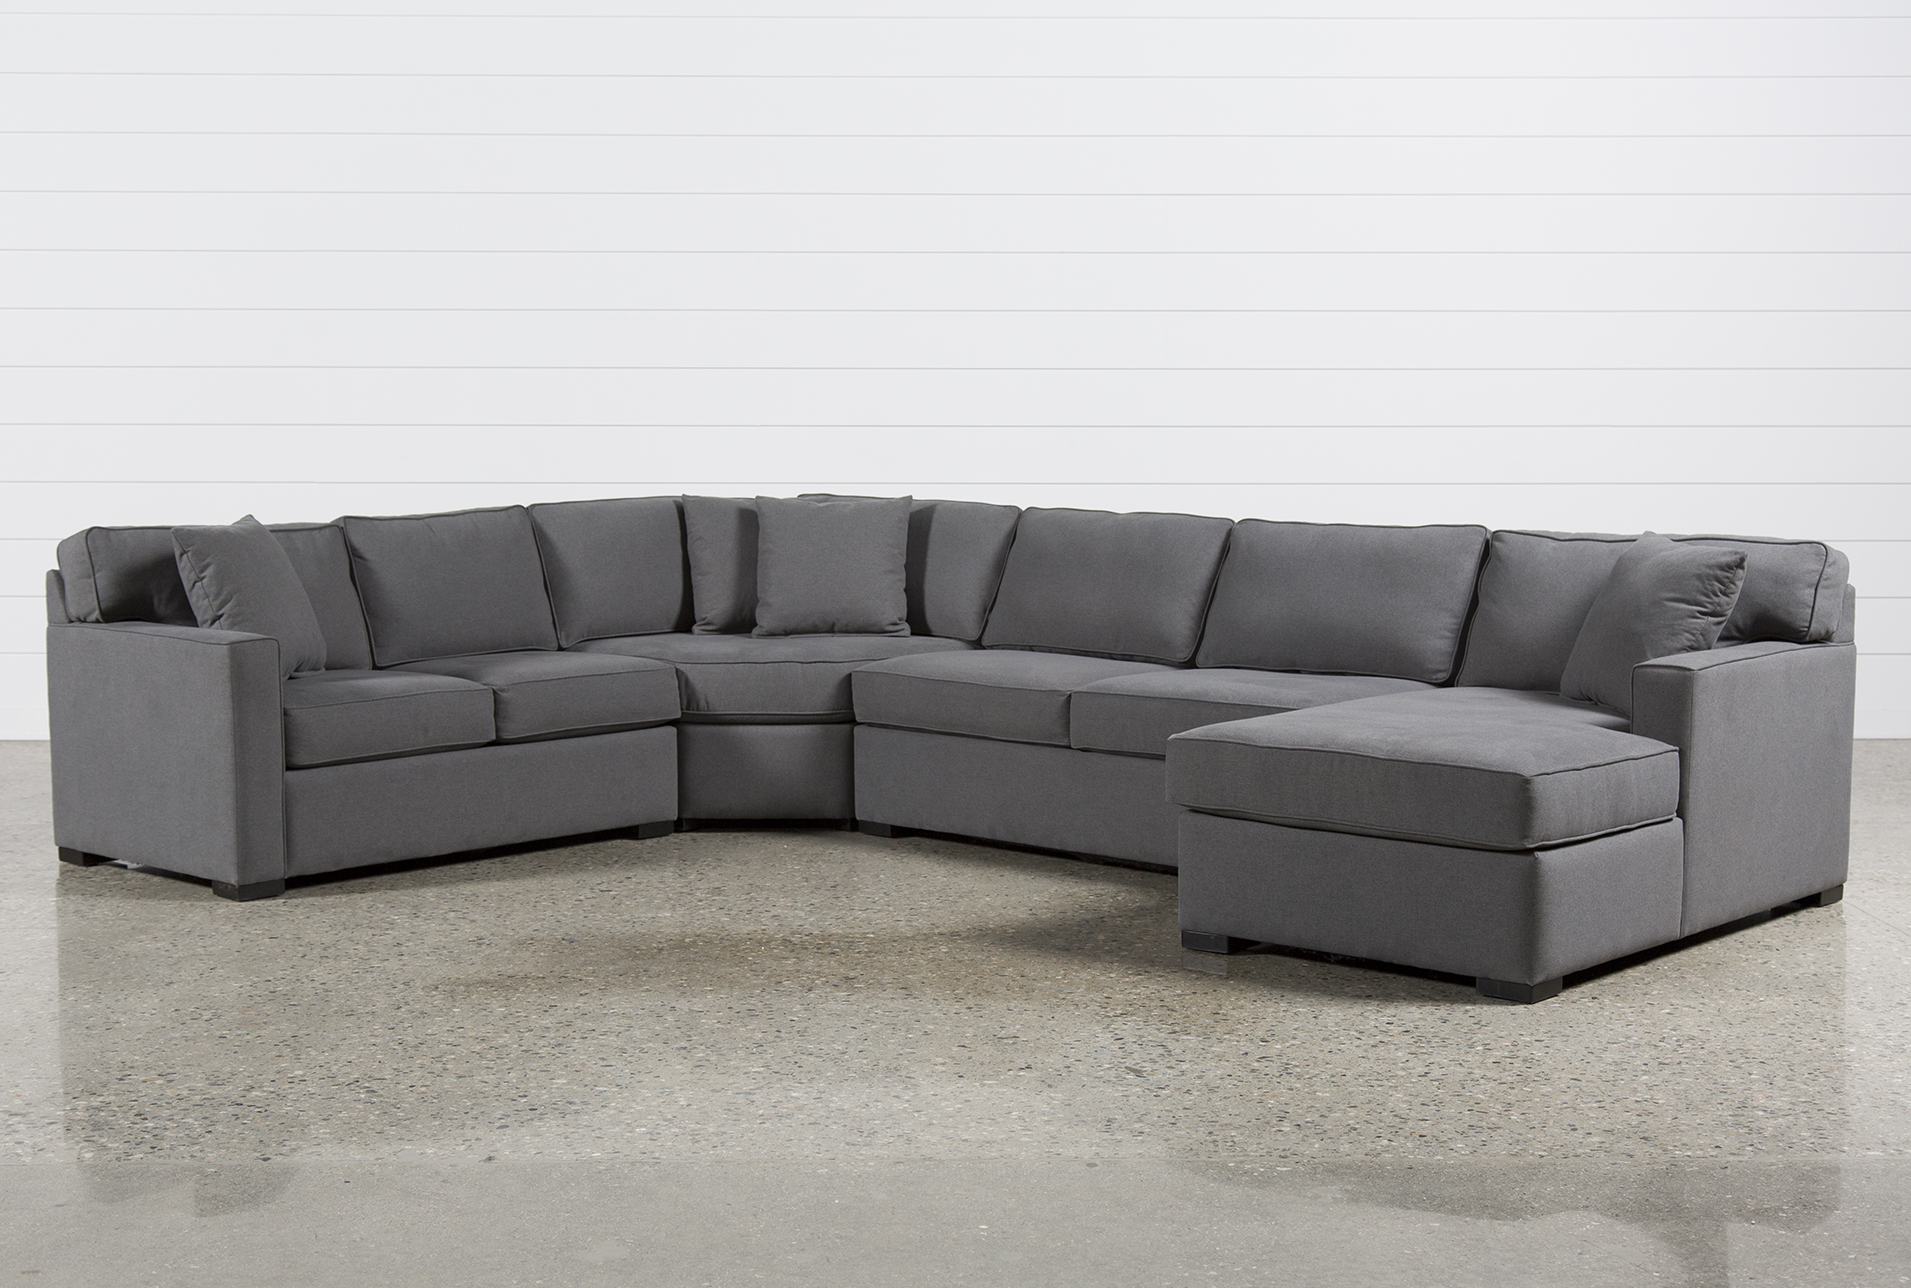 Sectional Sofas: Guide to Sofa Shape, Sofa Care and More | Living Spaces